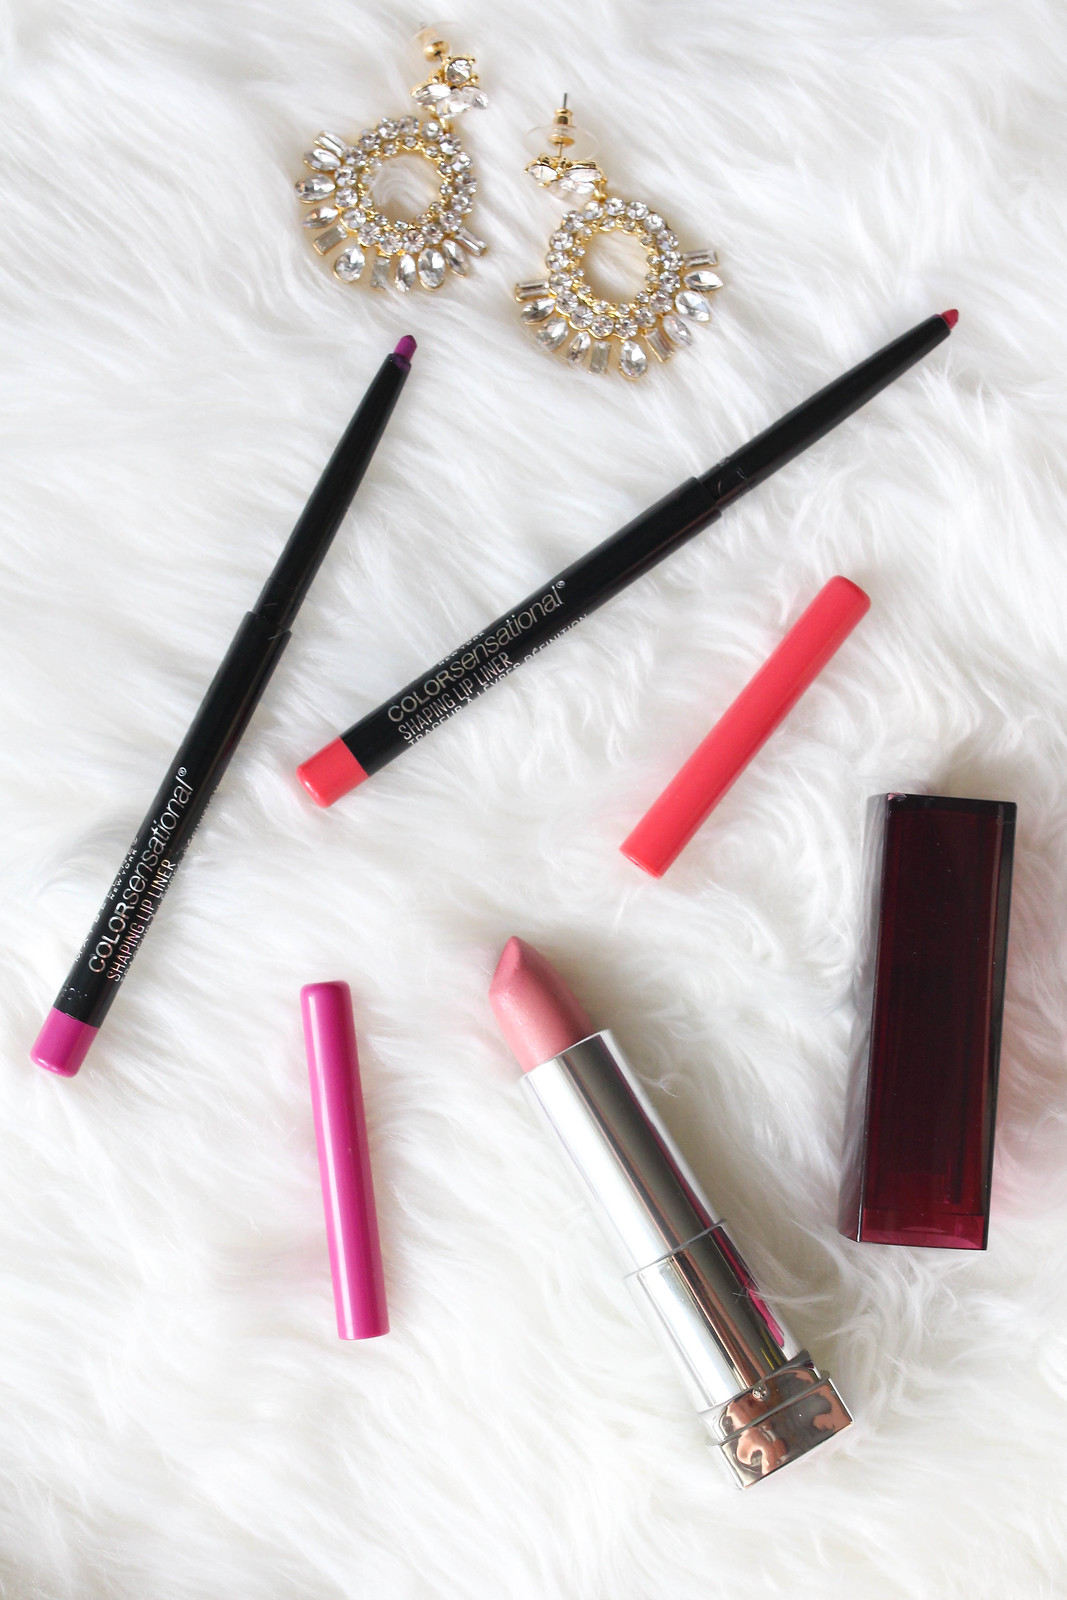 Maybelline Color Sensational Shaping Lip Liner in Wild Violets and Pink Coral Maybelline Color Sensational Lip Color in Born with It